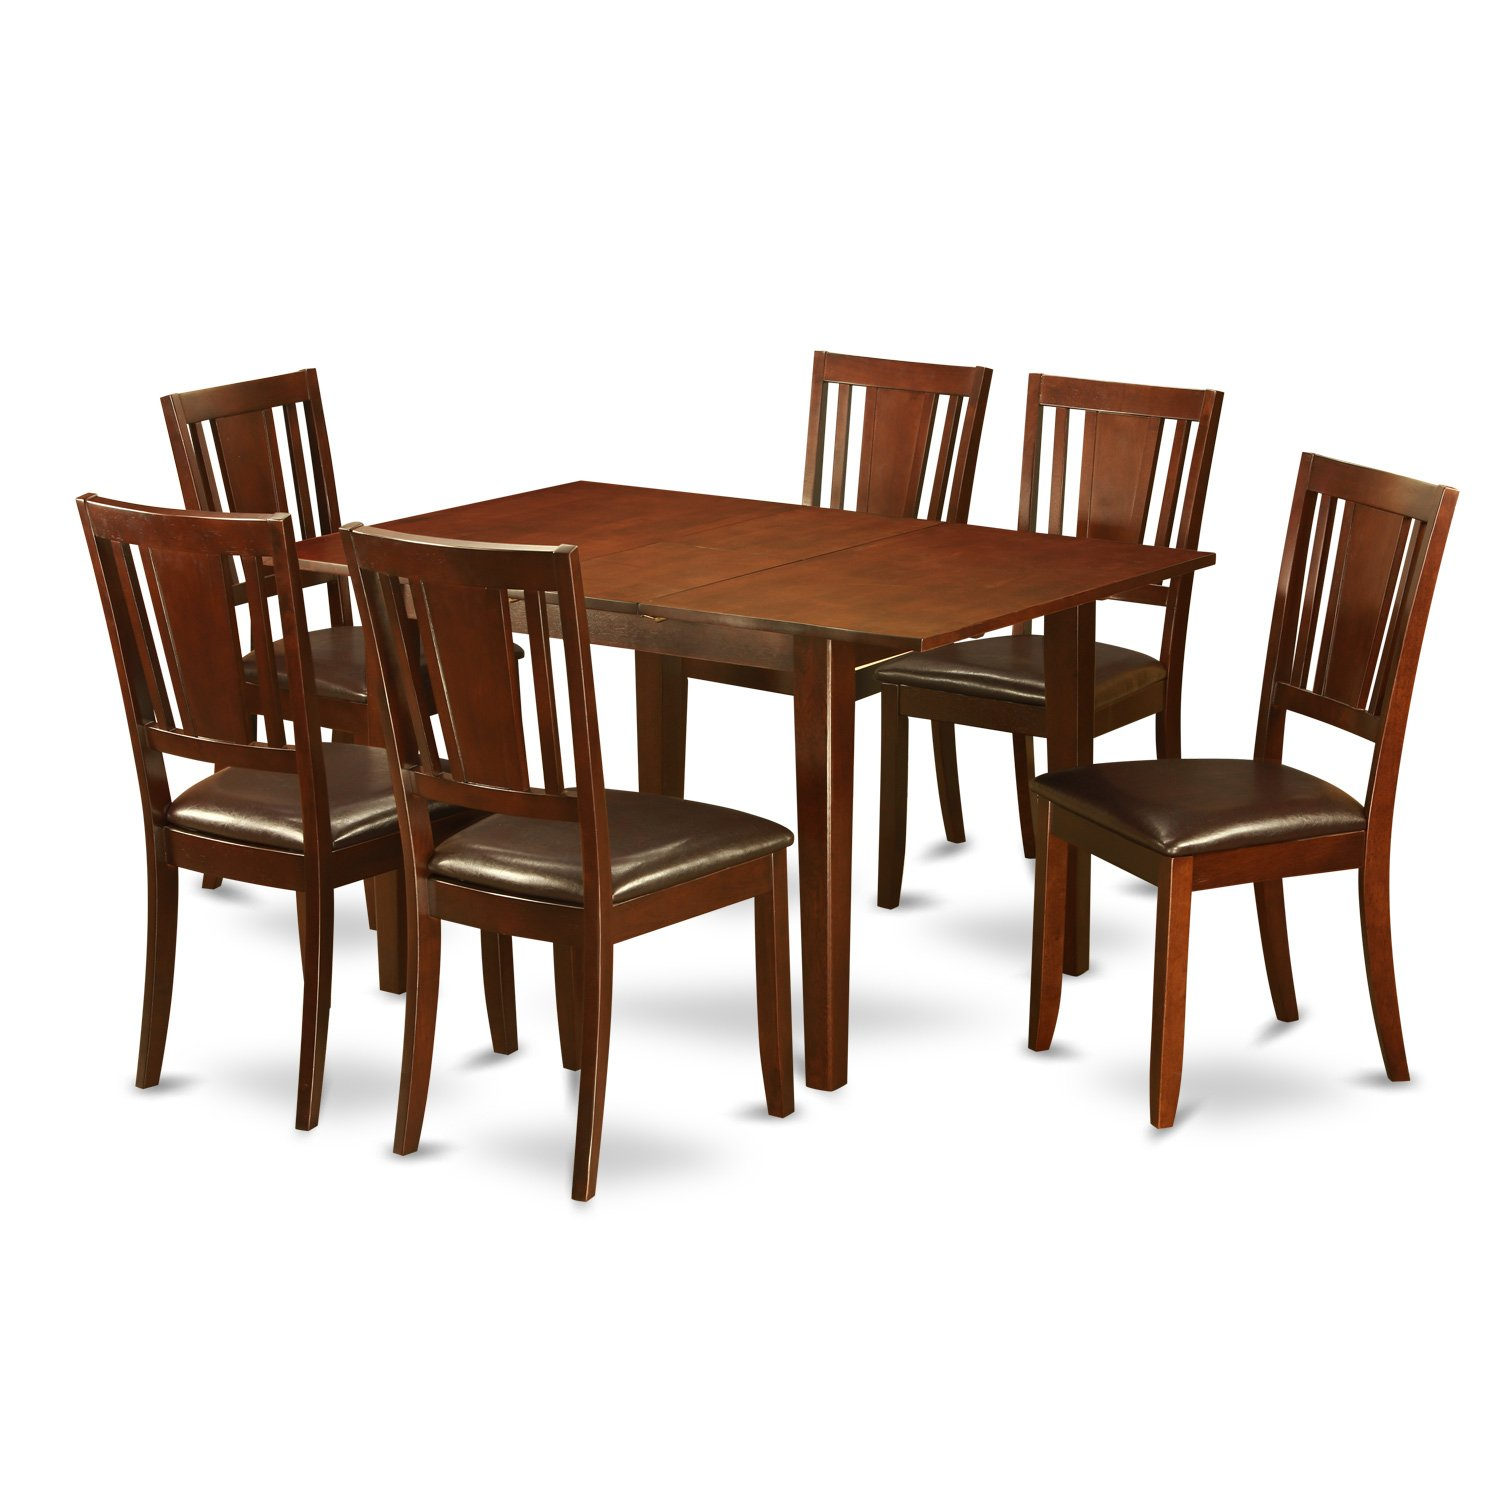 PSDU7-MAH-LC 7 Pc small Kitchen Table set – dinette Table with 6 Dining Chairs